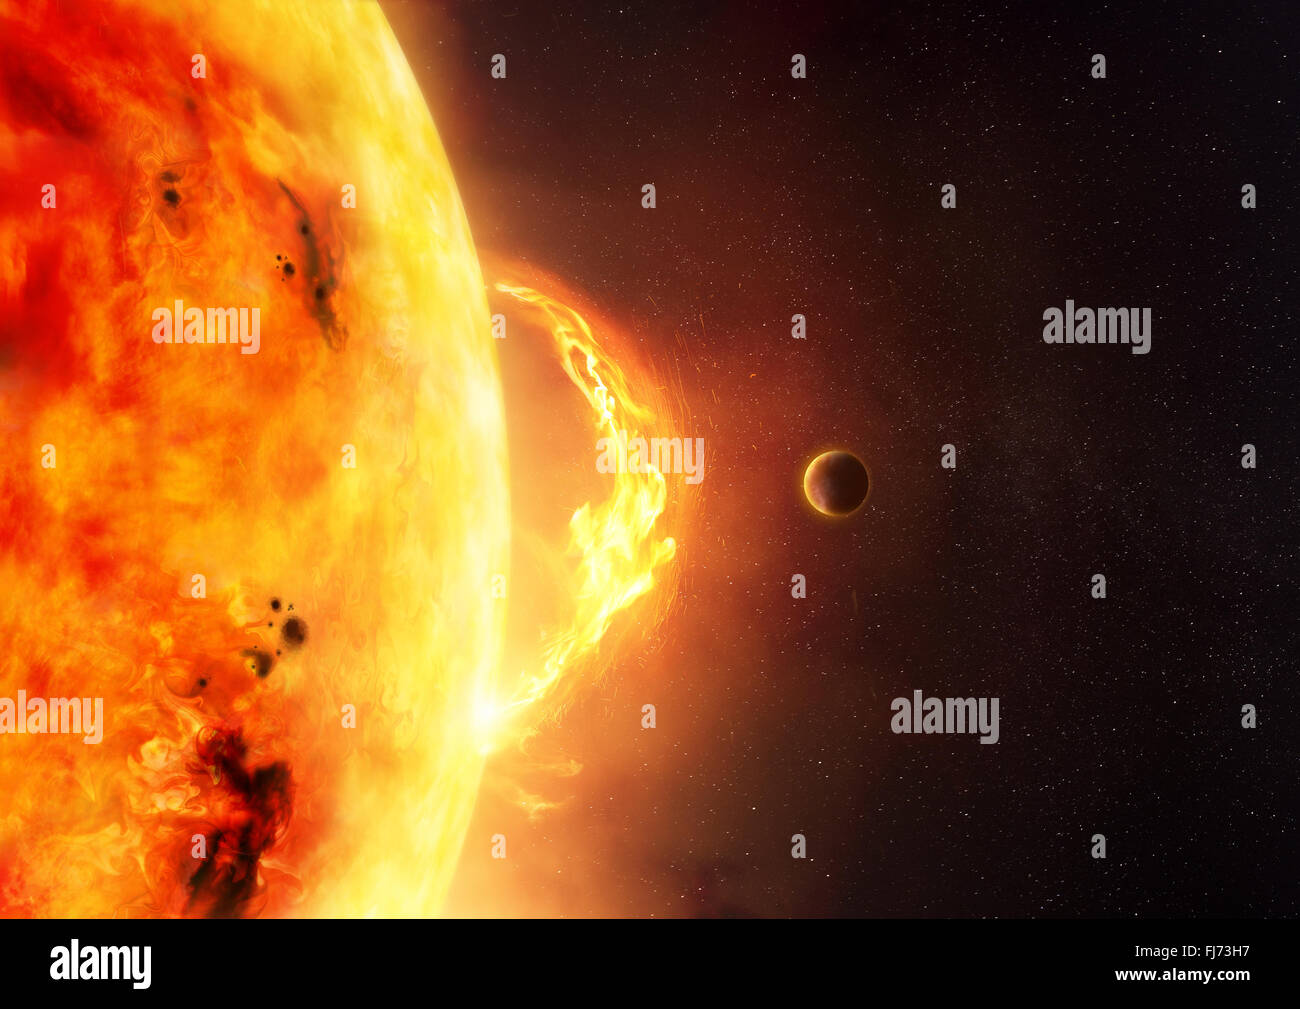 The Sun - Solar Flare. An illustration of the sun and sun flare with a planet to give scale to the size of the flare. - Stock Image